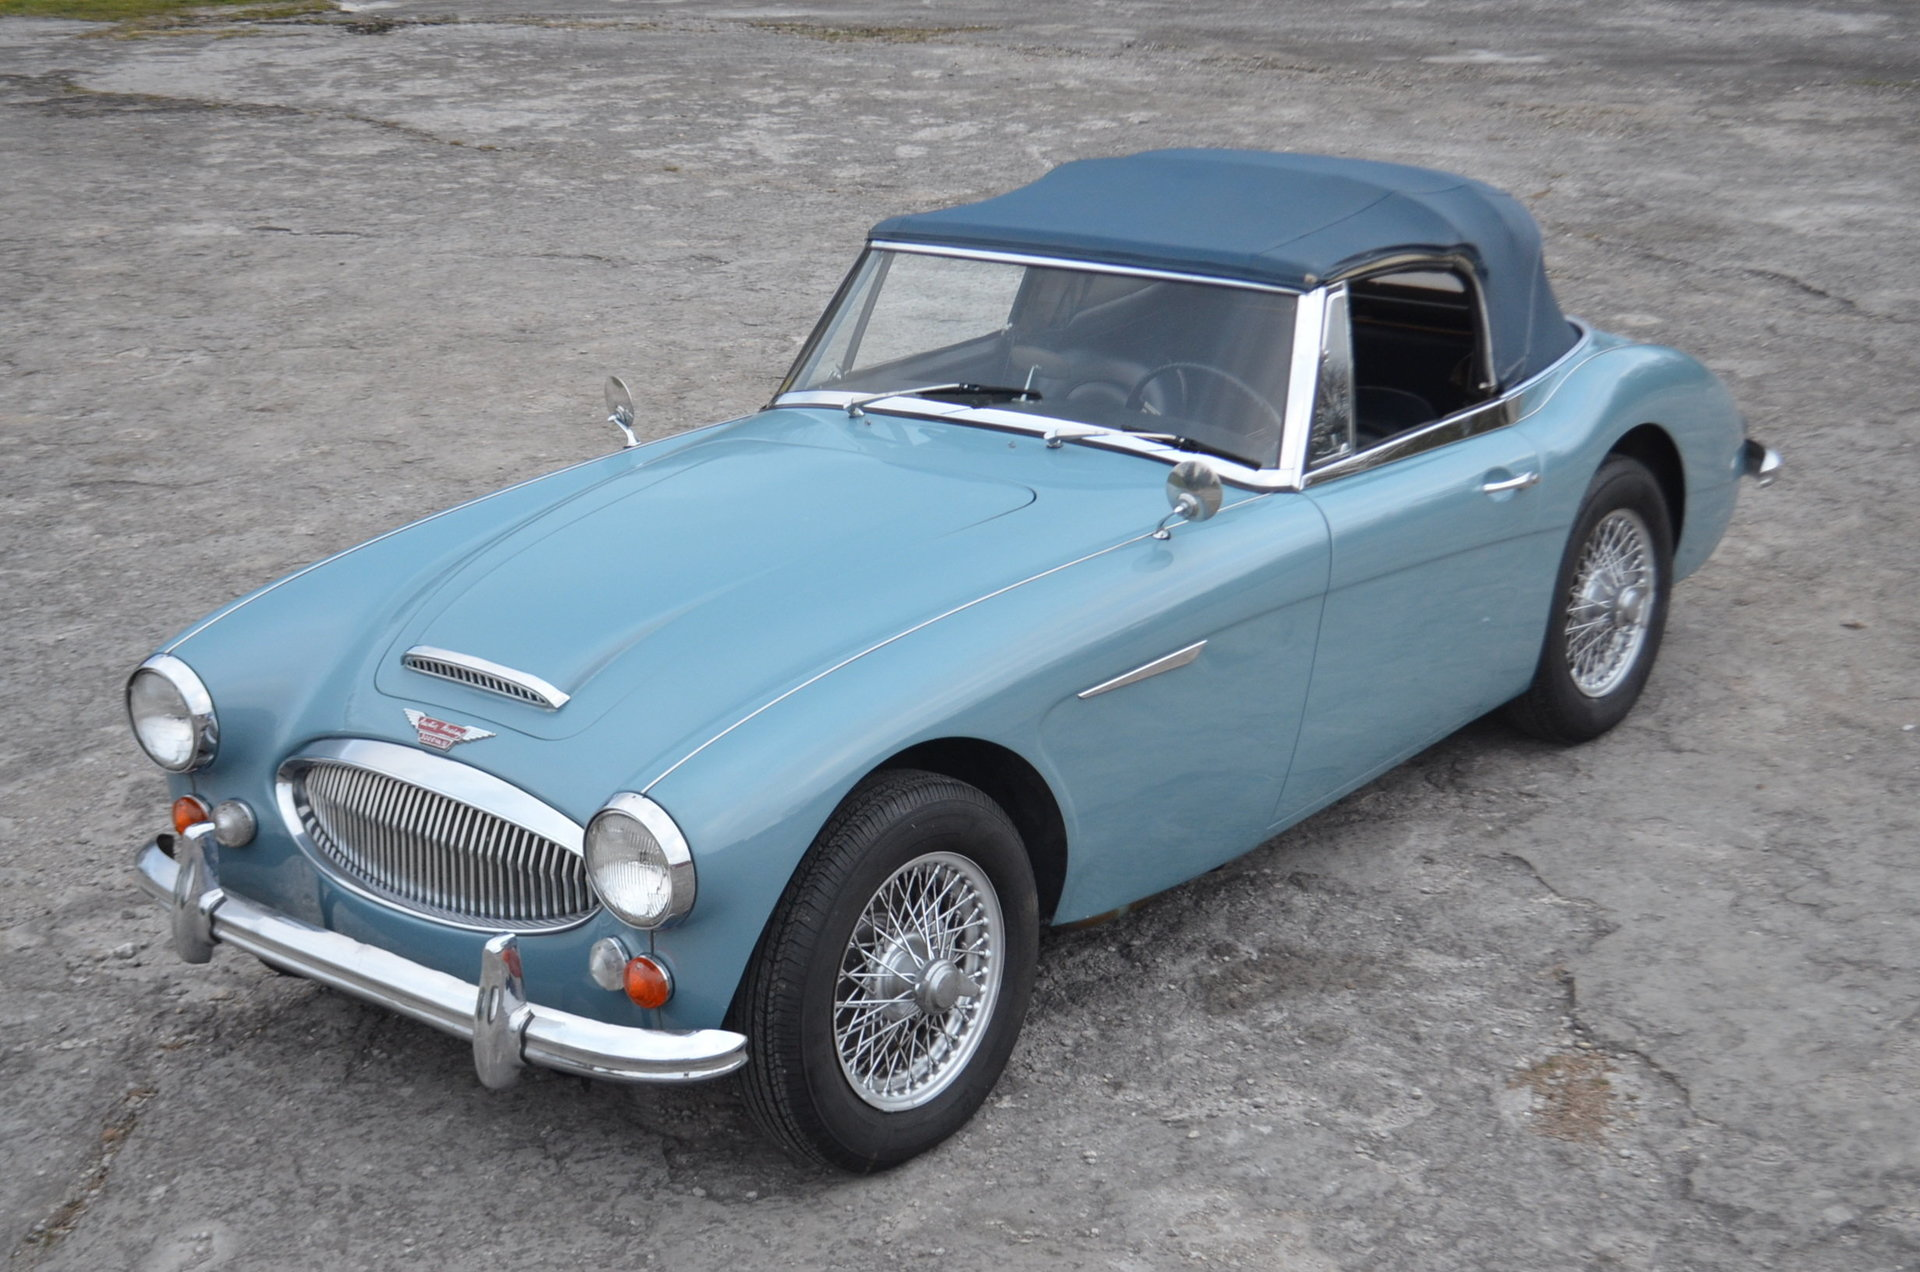 28982dabcbb5 hd 1967 austin healey 3000 bj8